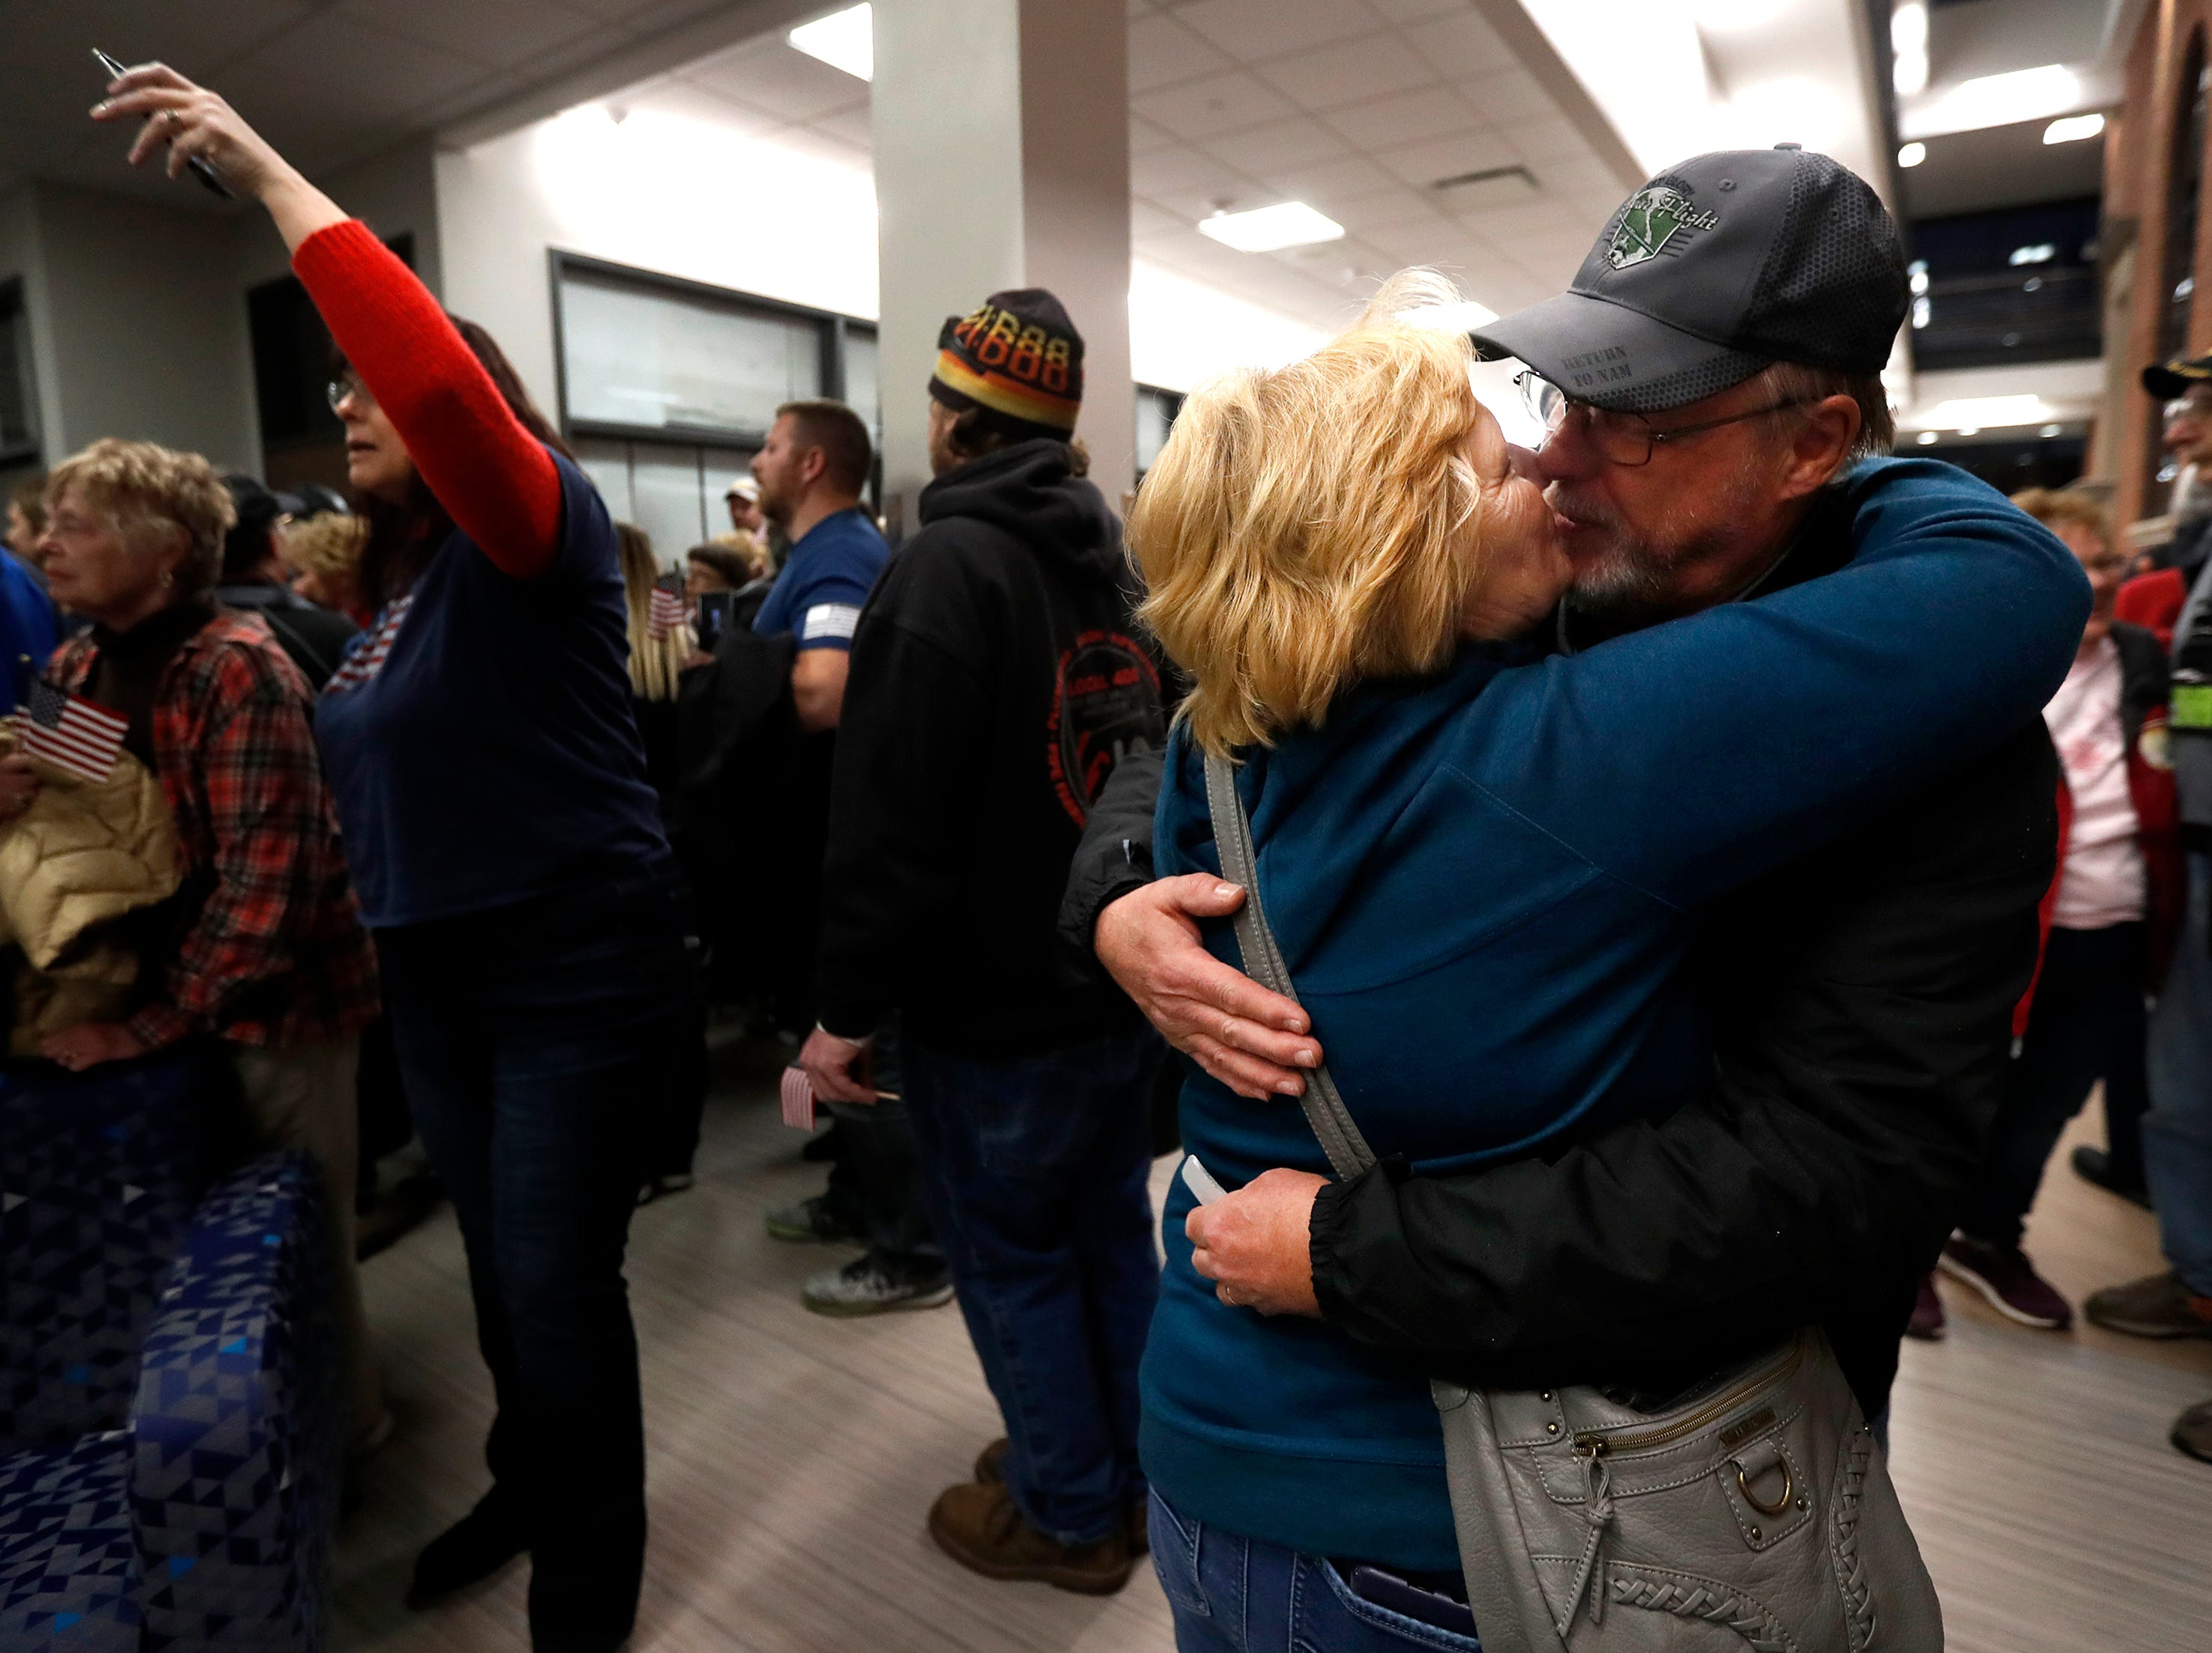 Dick Furman kisses his wife Joanne, of New London, during the Old Glory Honor Flight-Return to Nam welcome home Saturday, March 9, 2019, at Menasha High School in Menasha, Wis. Veterans were greeted by friends, family, the Menasha High School band, and the 484th Army Band. The couple was married in 1971 just before Dick went to Vietnam.Danny Damiani/USA TODAY NETWORK-Wisconsin